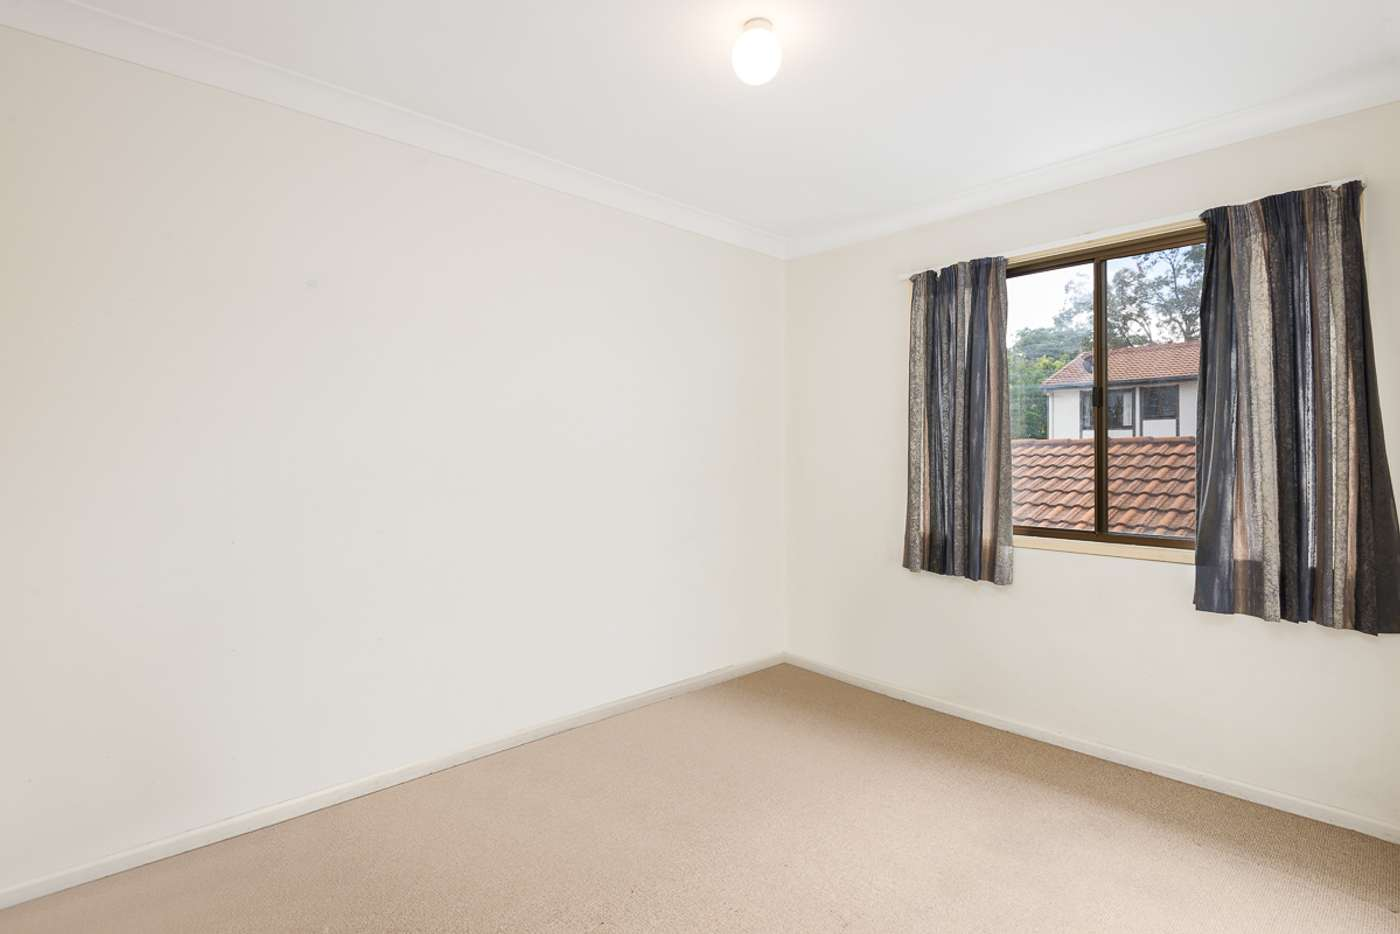 Fifth view of Homely townhouse listing, 19/39 Garfield Road, Woodridge QLD 4114